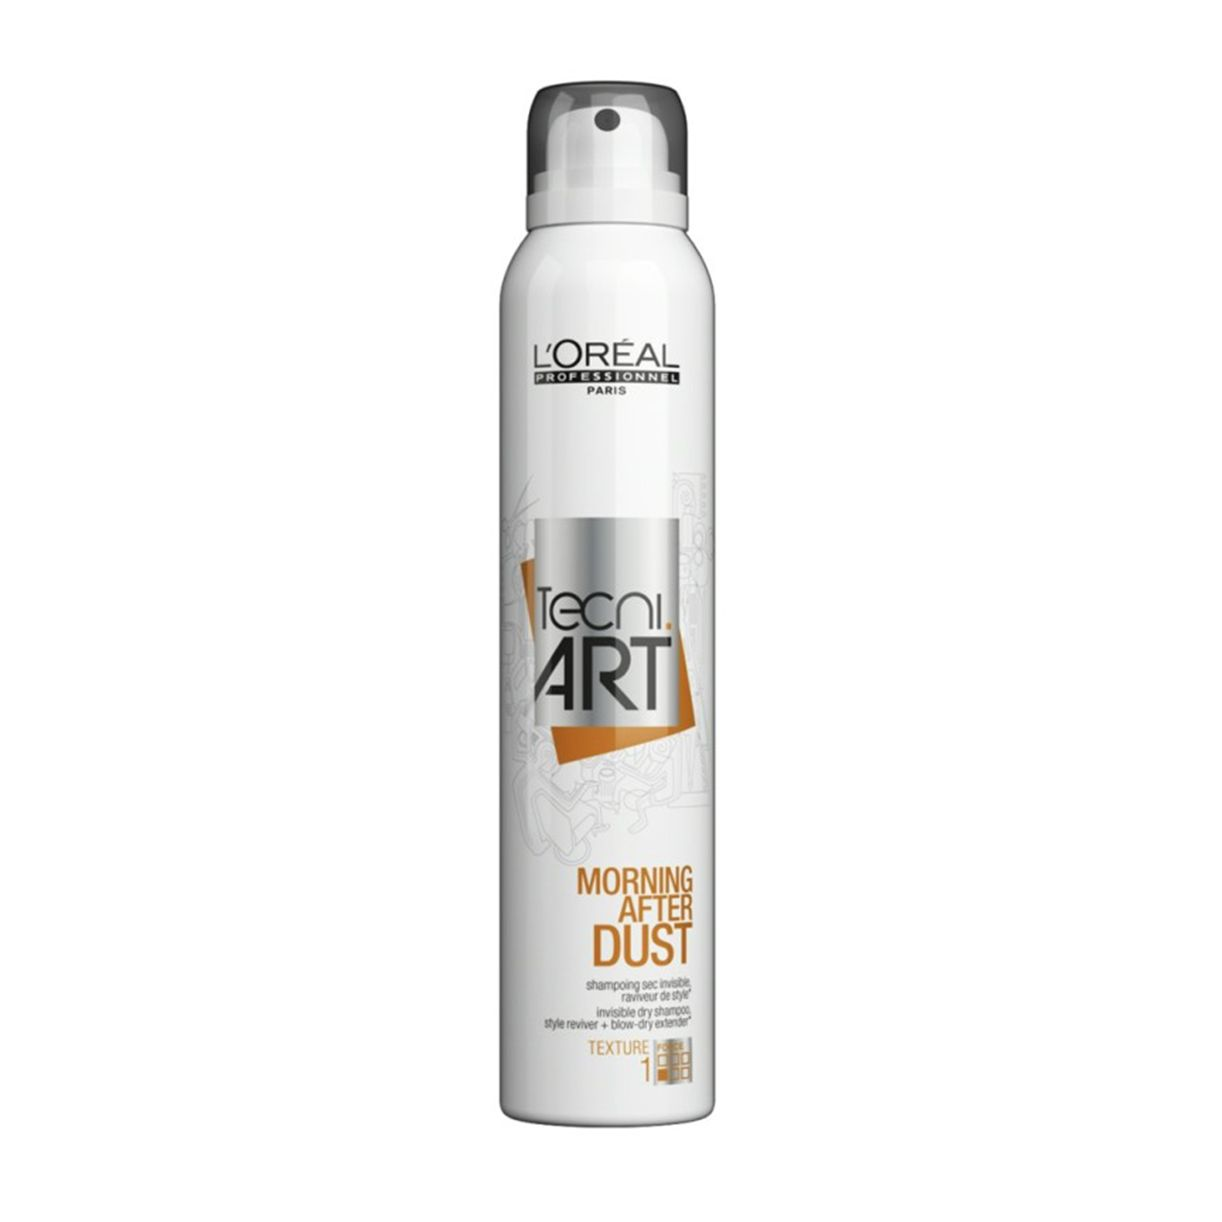 L'Oréal Professionnel Tecni Art Morning After Dust 200 ml